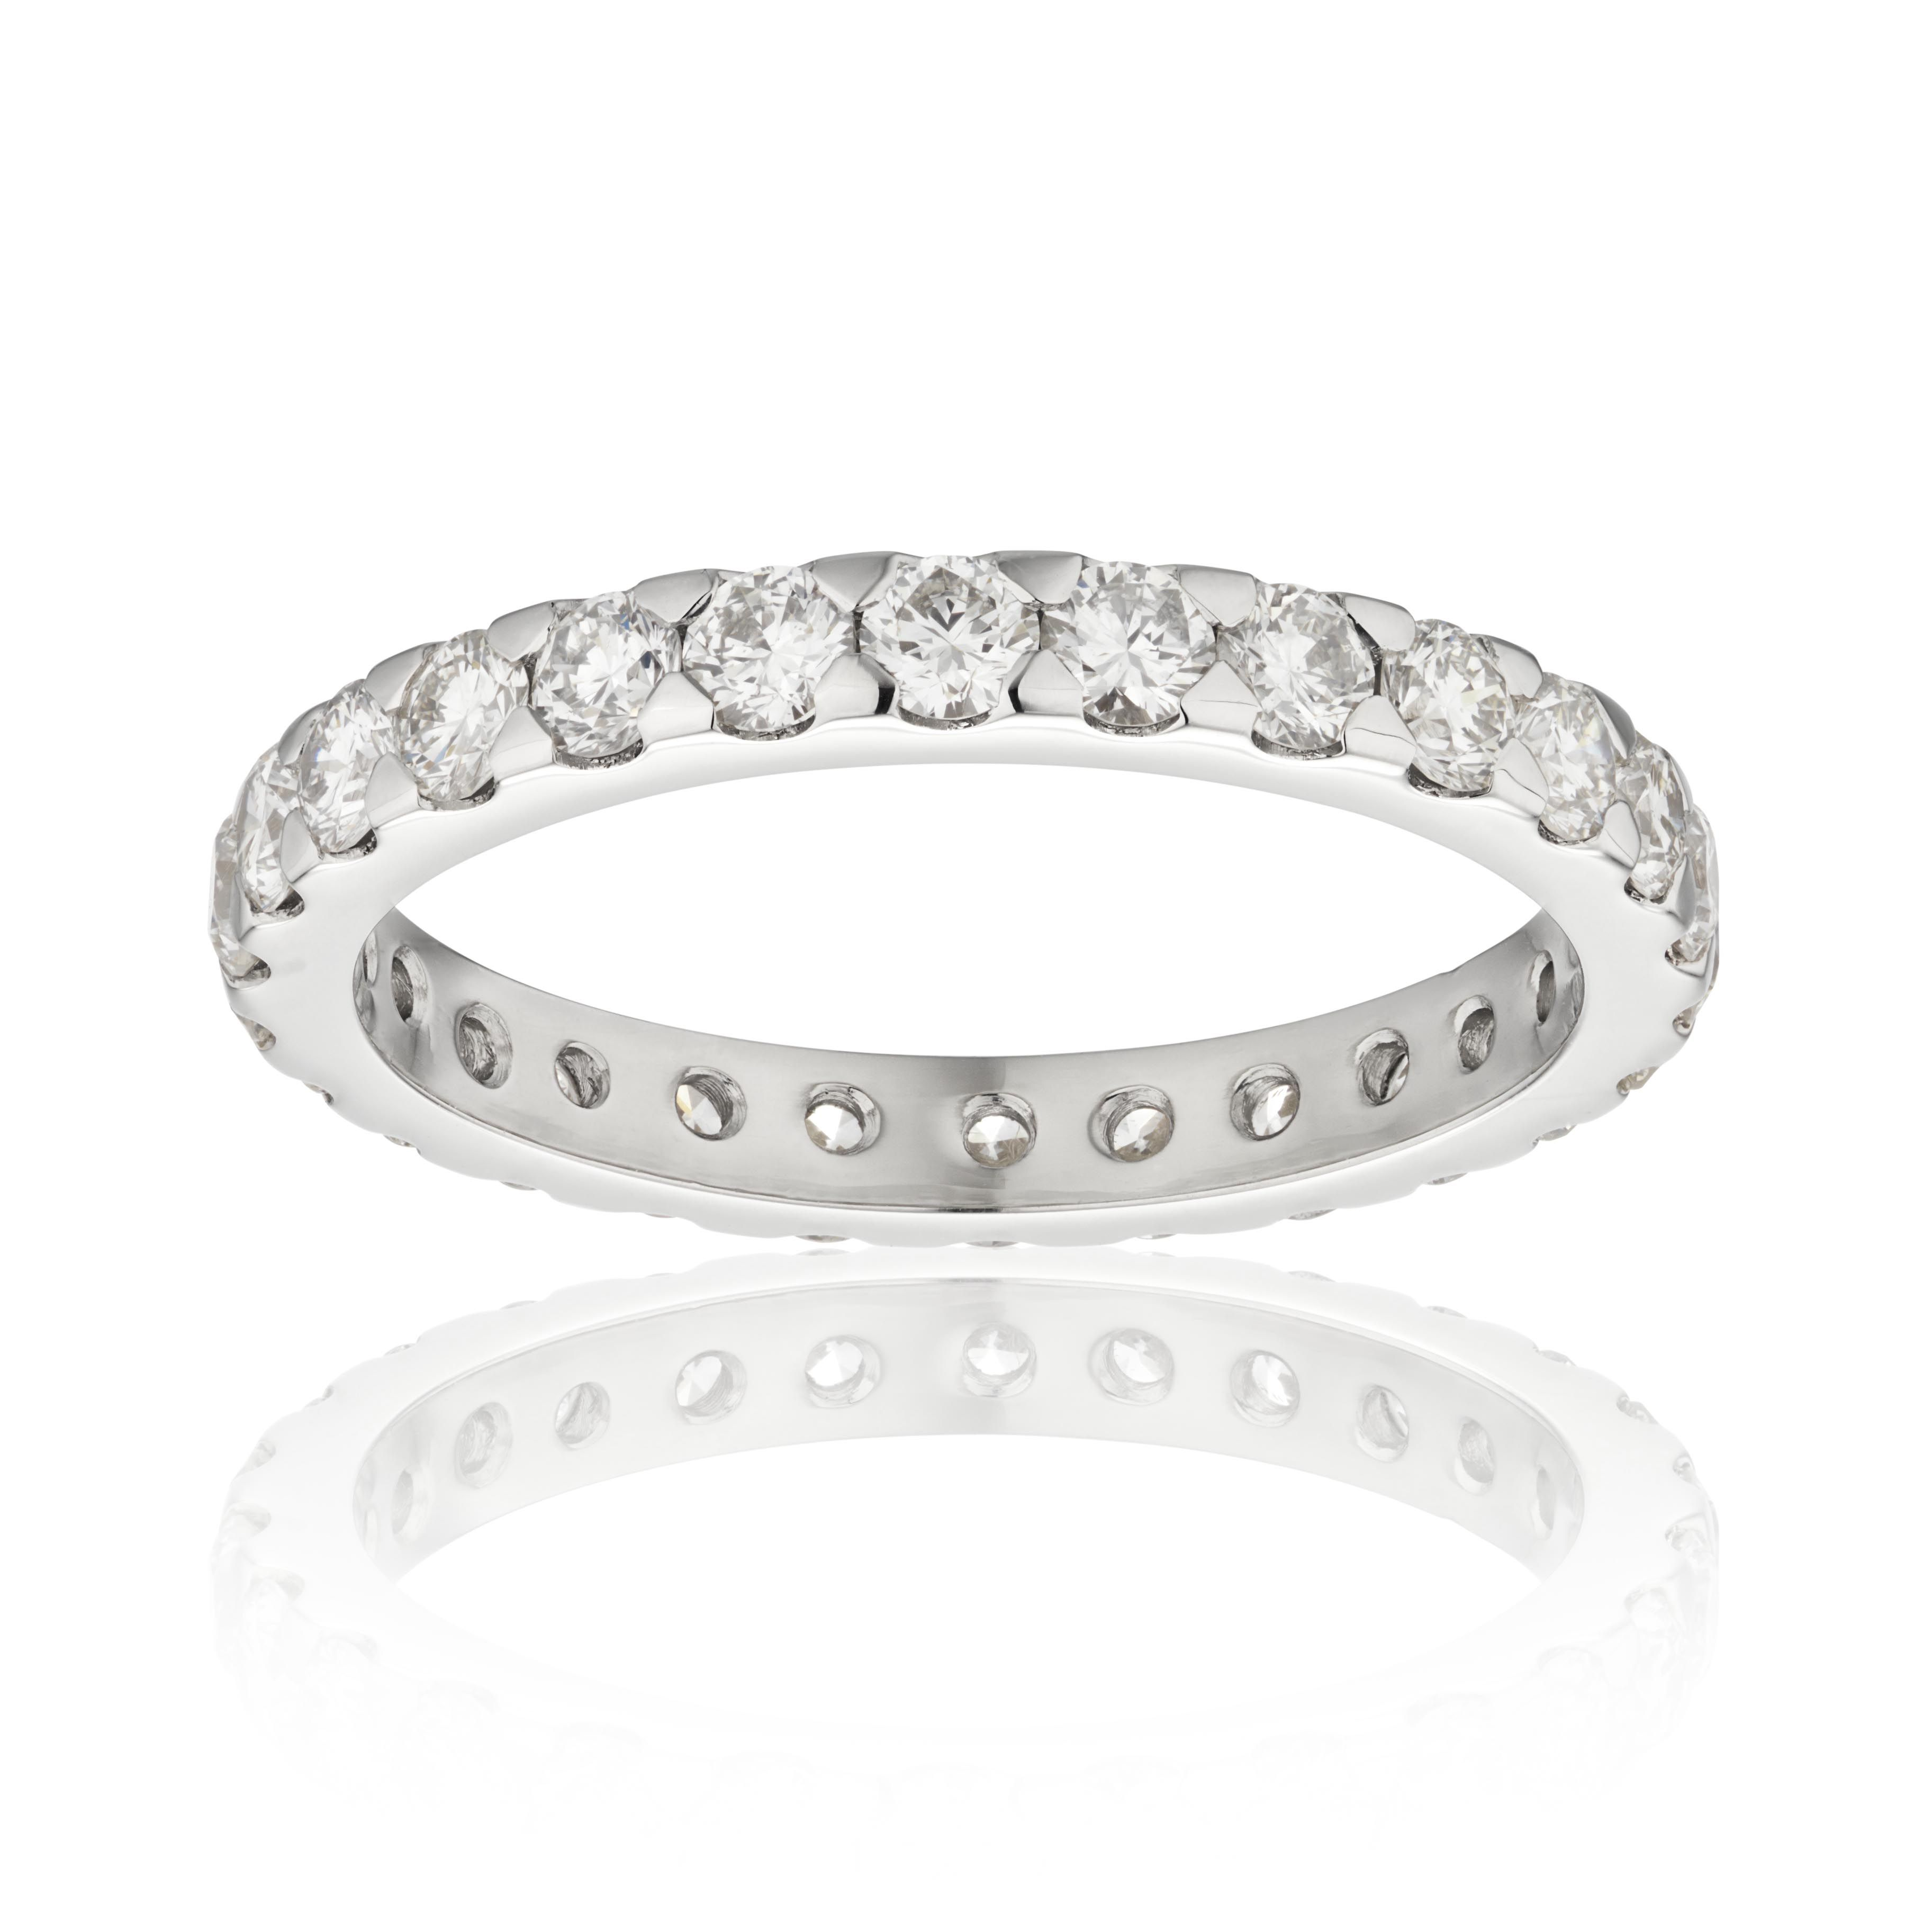 All our rings are made by master craftsman in our Hatton Garden